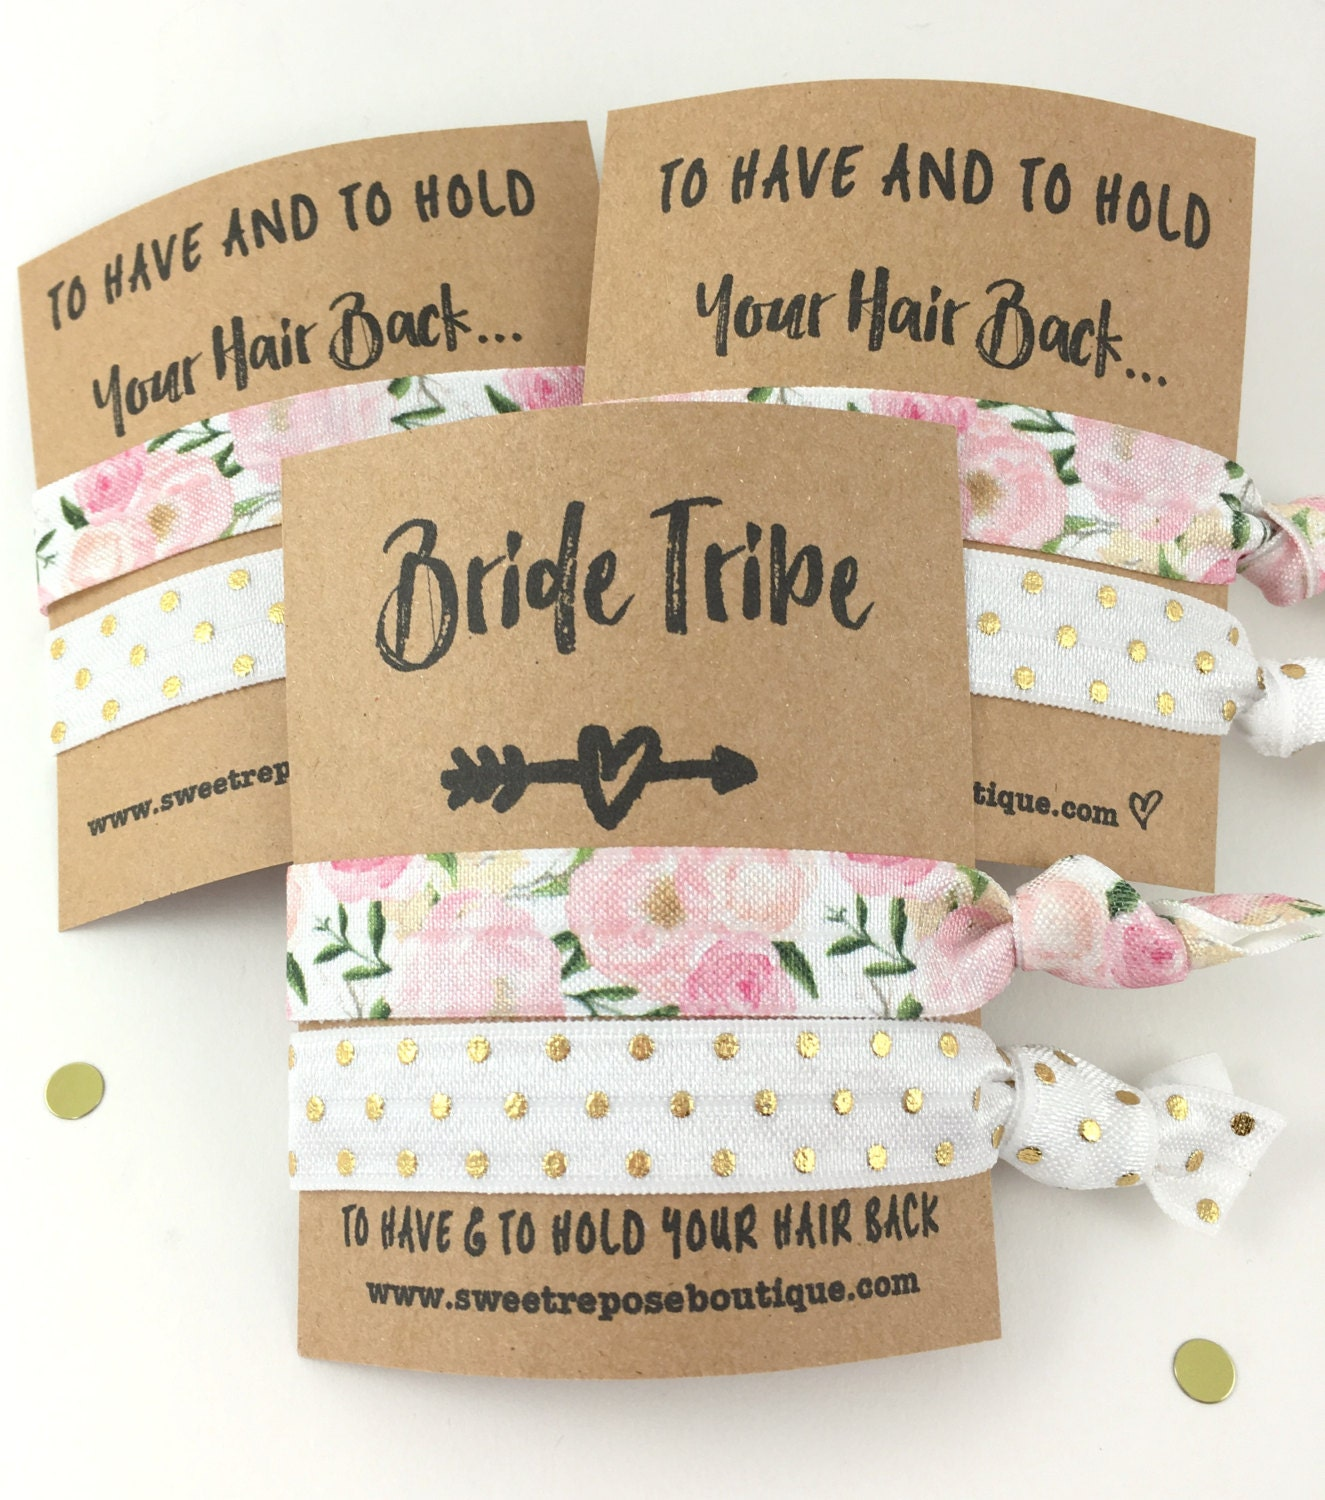 Bridesmaid Gifts: Bachelorette Party Favors // Bridesmaid Gift // Bride Tribe